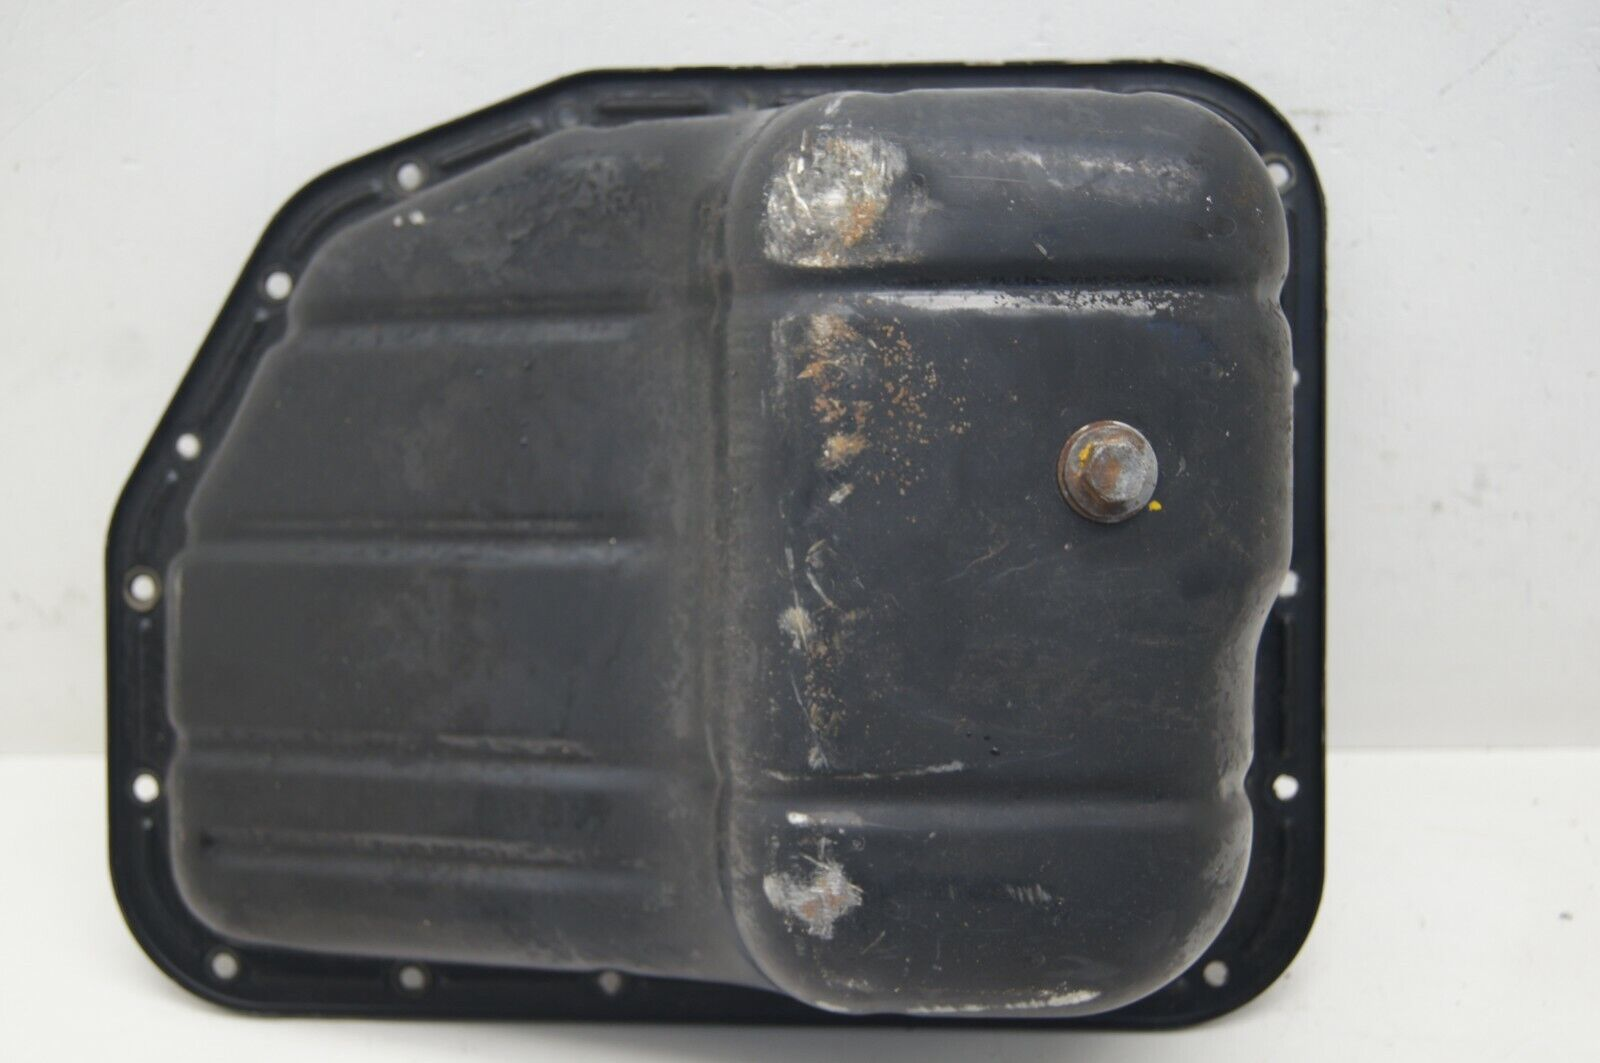 Used Toyota Land Cruiser Oil Pans for Sale